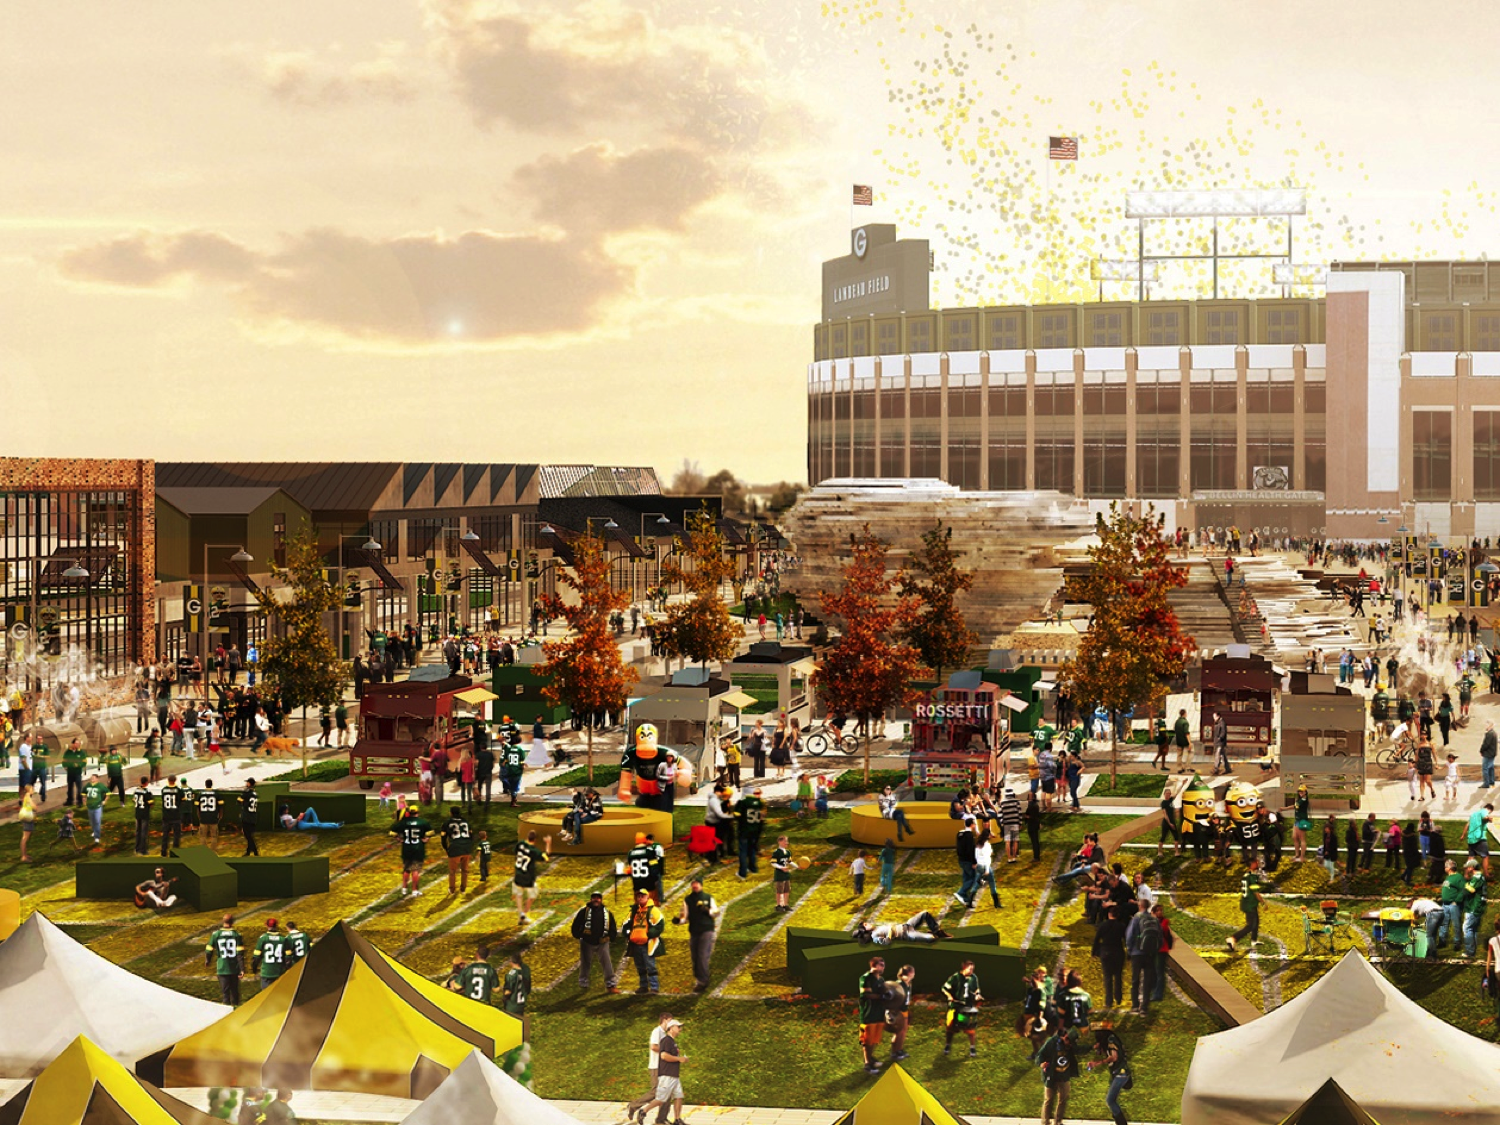 Artist rendering of Titletown District in Green Bay, WI. Image via Rossetti.